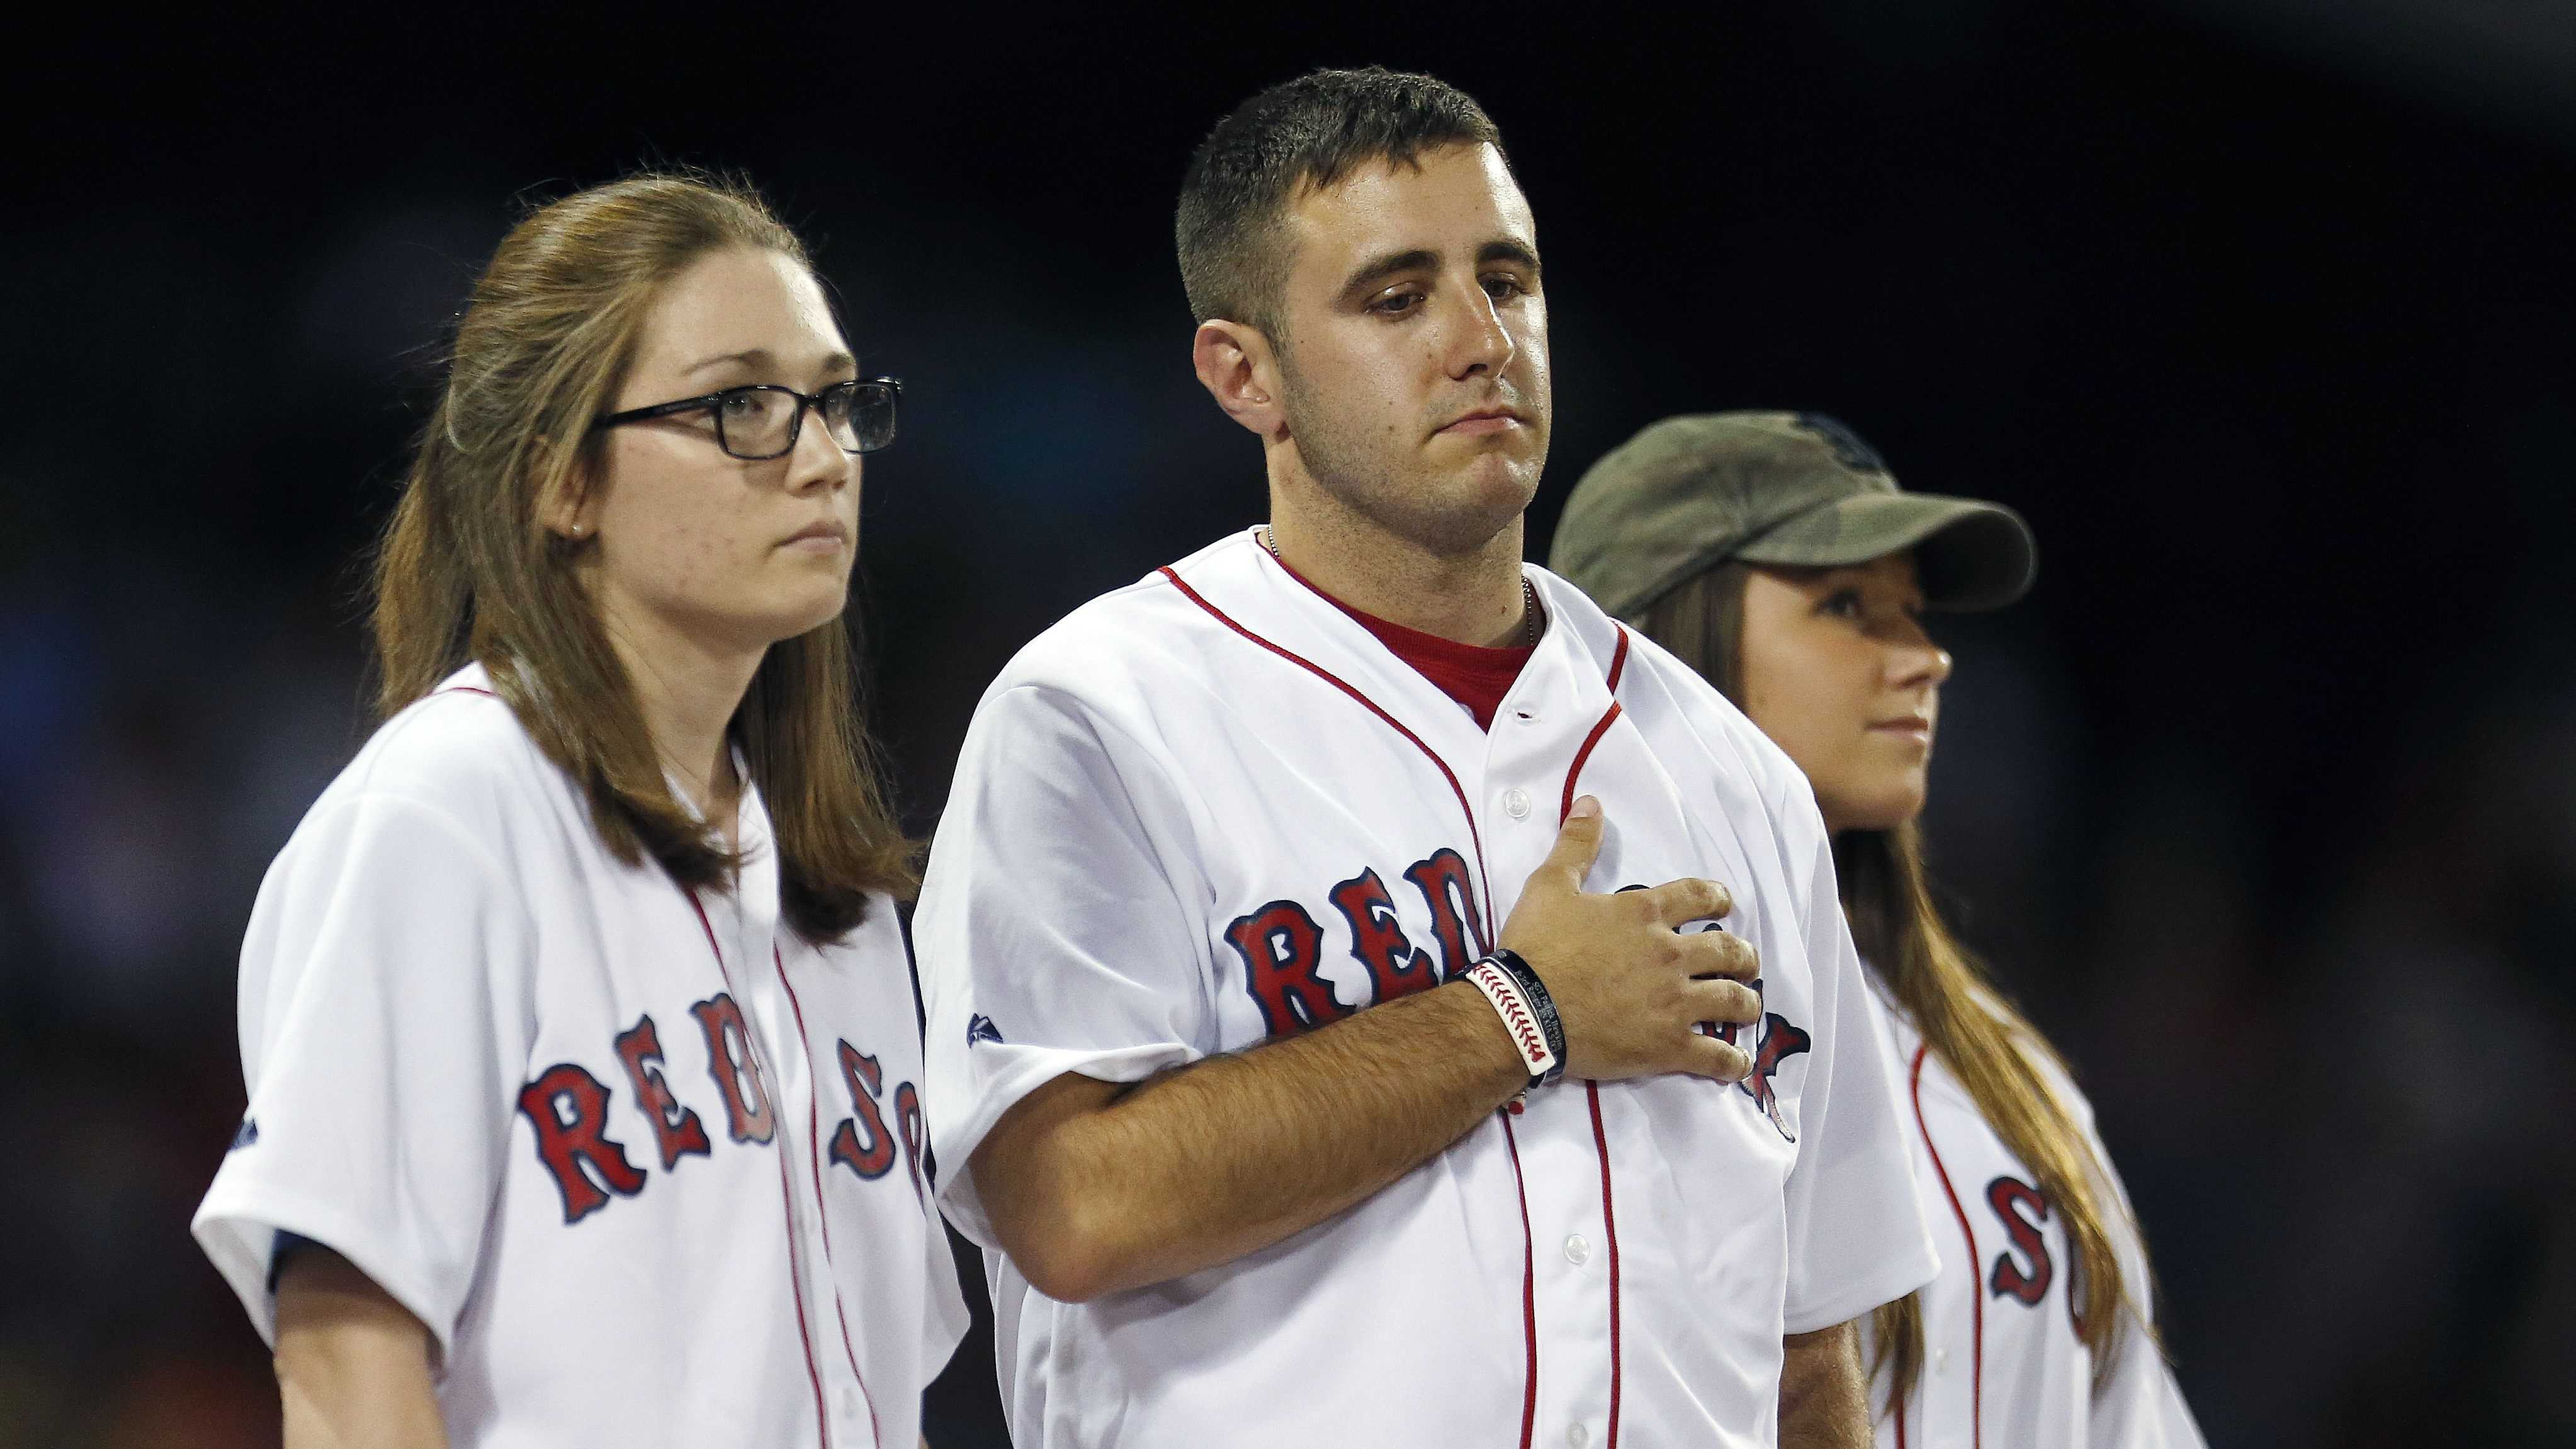 The family of Maj. Gen. Harold Greene, from left, daughter-in-law Kasandra, son Matthew and daughter Amelia, is honored during the fifth inning of a baseball game between the Boston Red Sox and the Houston Astros in Boston, Saturday, Aug. 16, 2014.